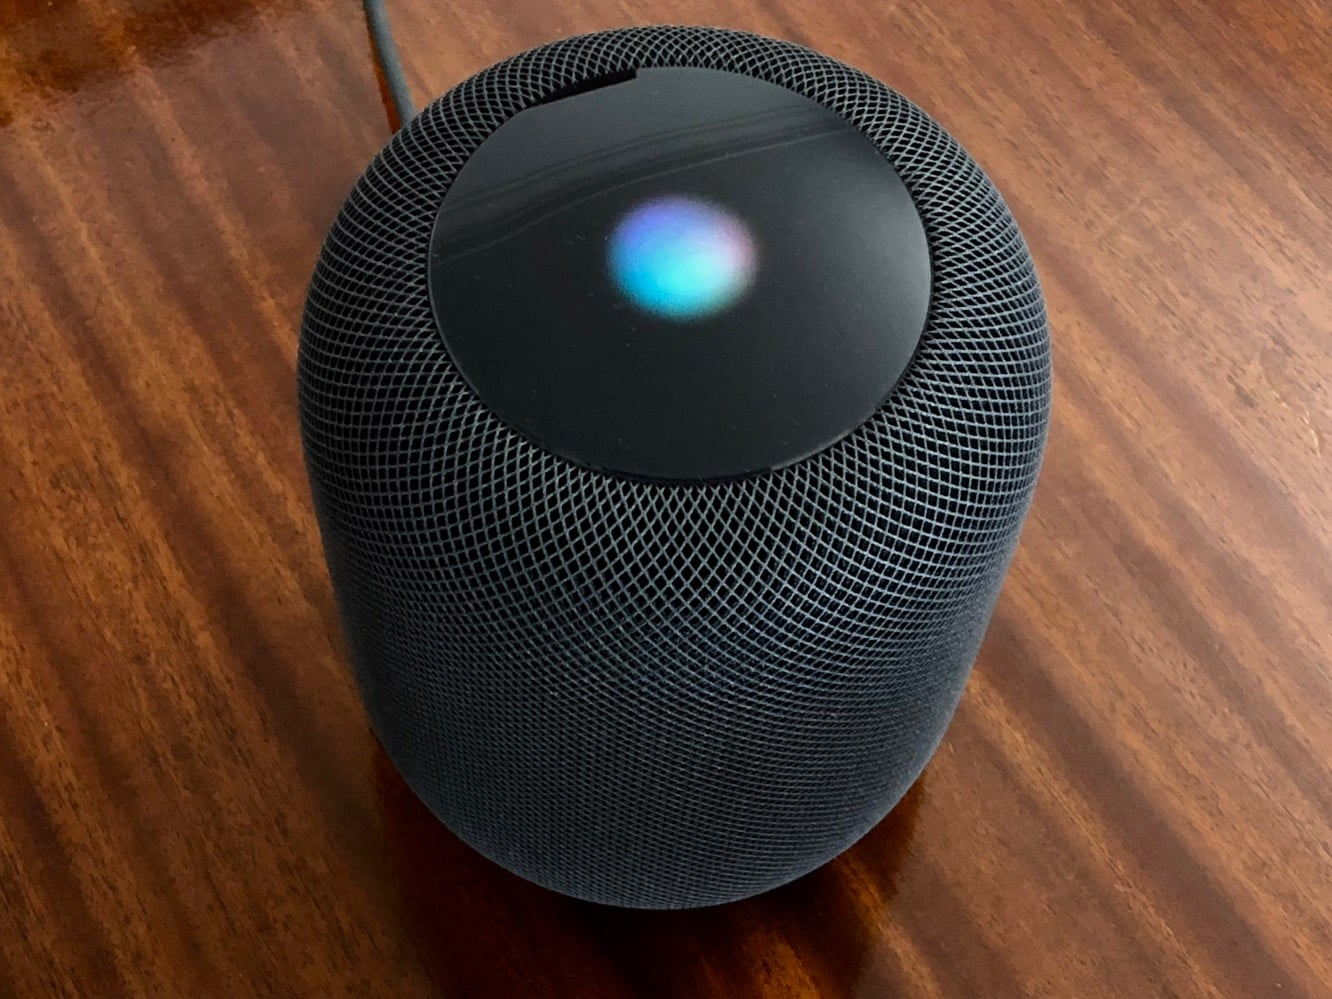 HomePod could gain Calendar support with iOS 11.4